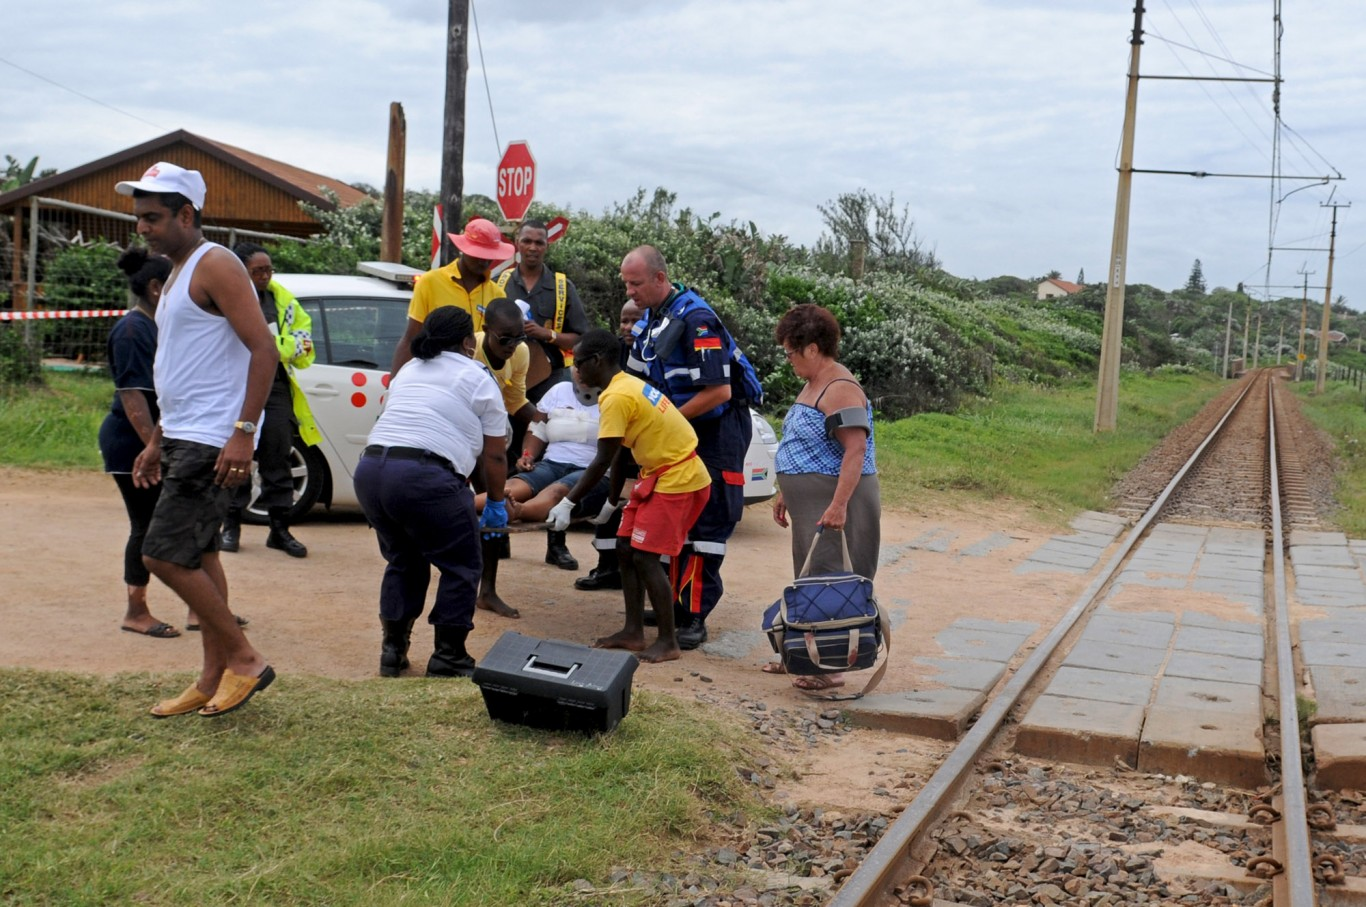 UIC, the worldwide railway organisation, has published its annual report on railway accidents — railway safety achieved a record high in 2018